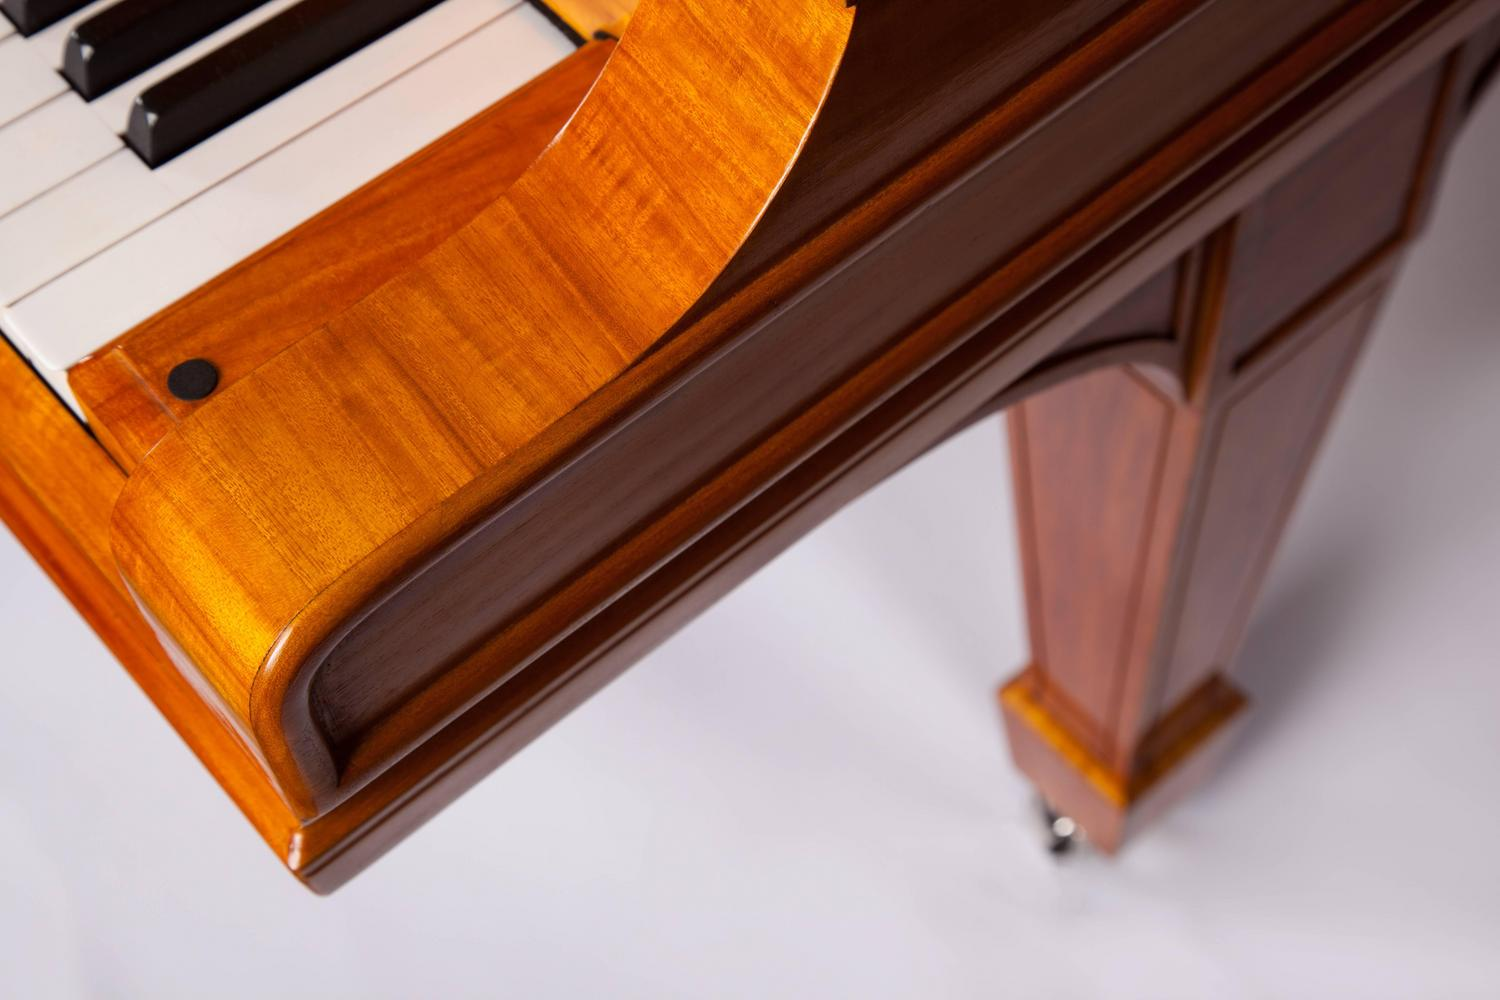 Steinway and sons l grand piano lemon wood handpolished